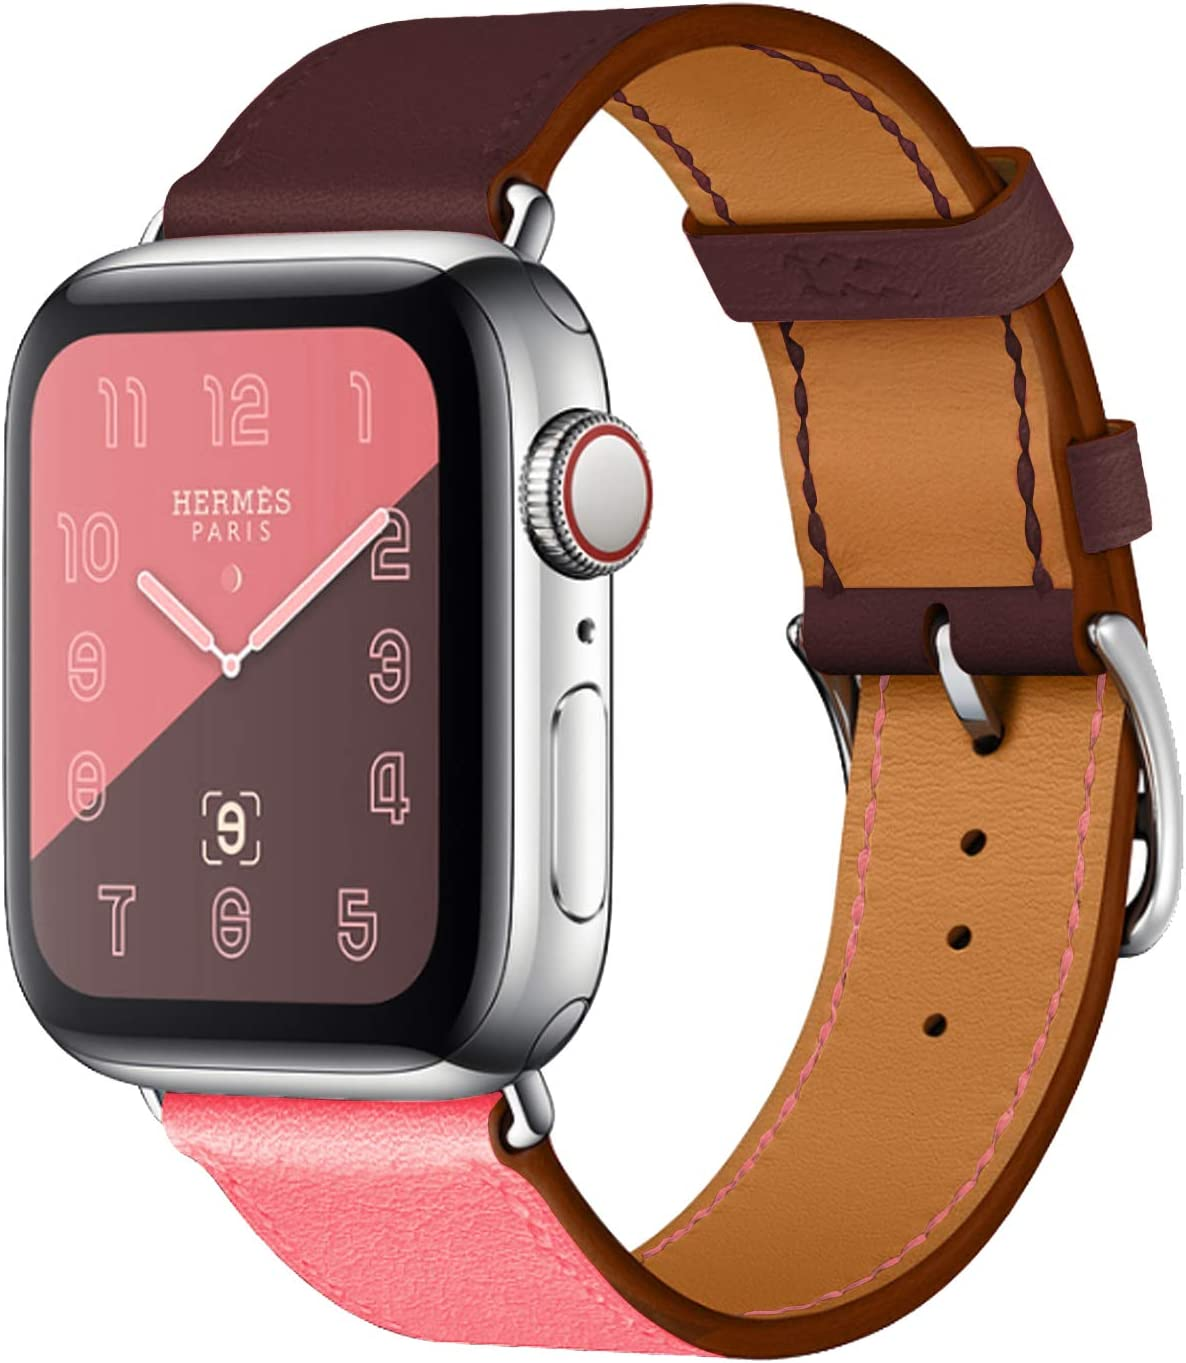 Compatible with Apple Watch Band 42mm 44mm Women Men, Pierre Case Genuine Leather Sweatproof Classic Replacement Strap Stainless Steel Buckle for iWatch Series 6/5/4/3/2/1 Wine red Pink